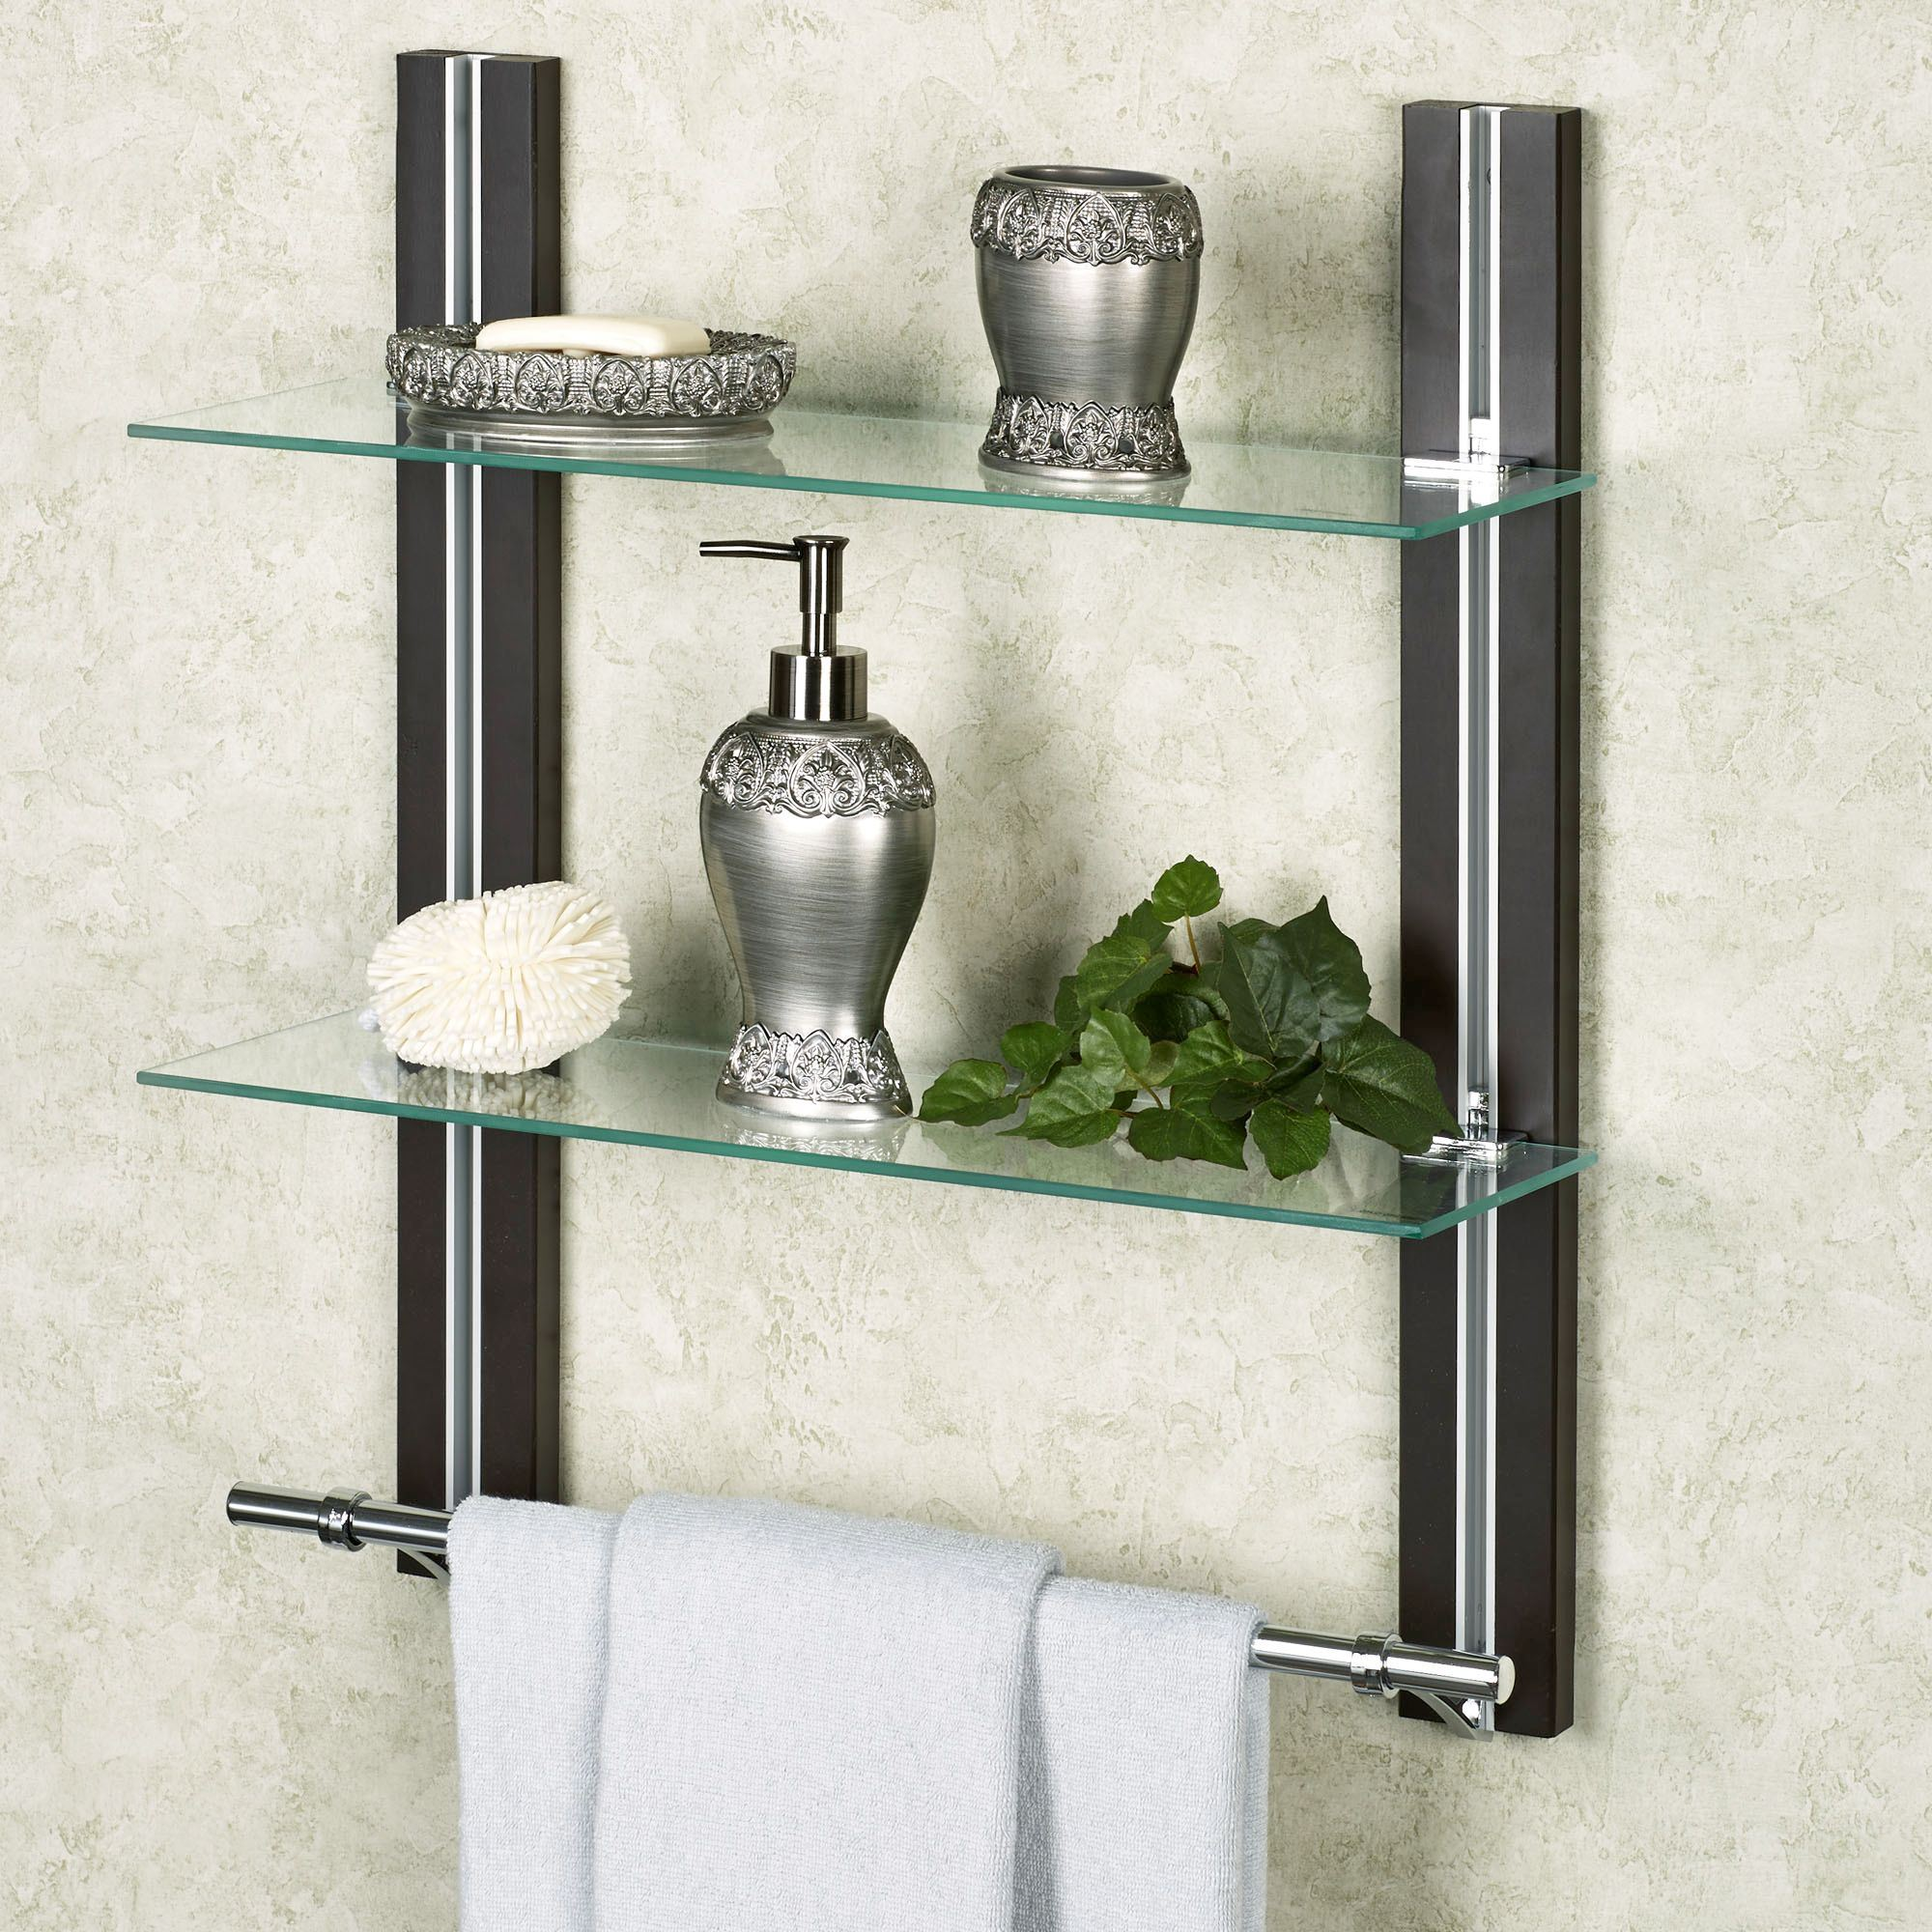 Bath Towel Shelf. Click To Expand Bath Towel Shelf A - Brint.co